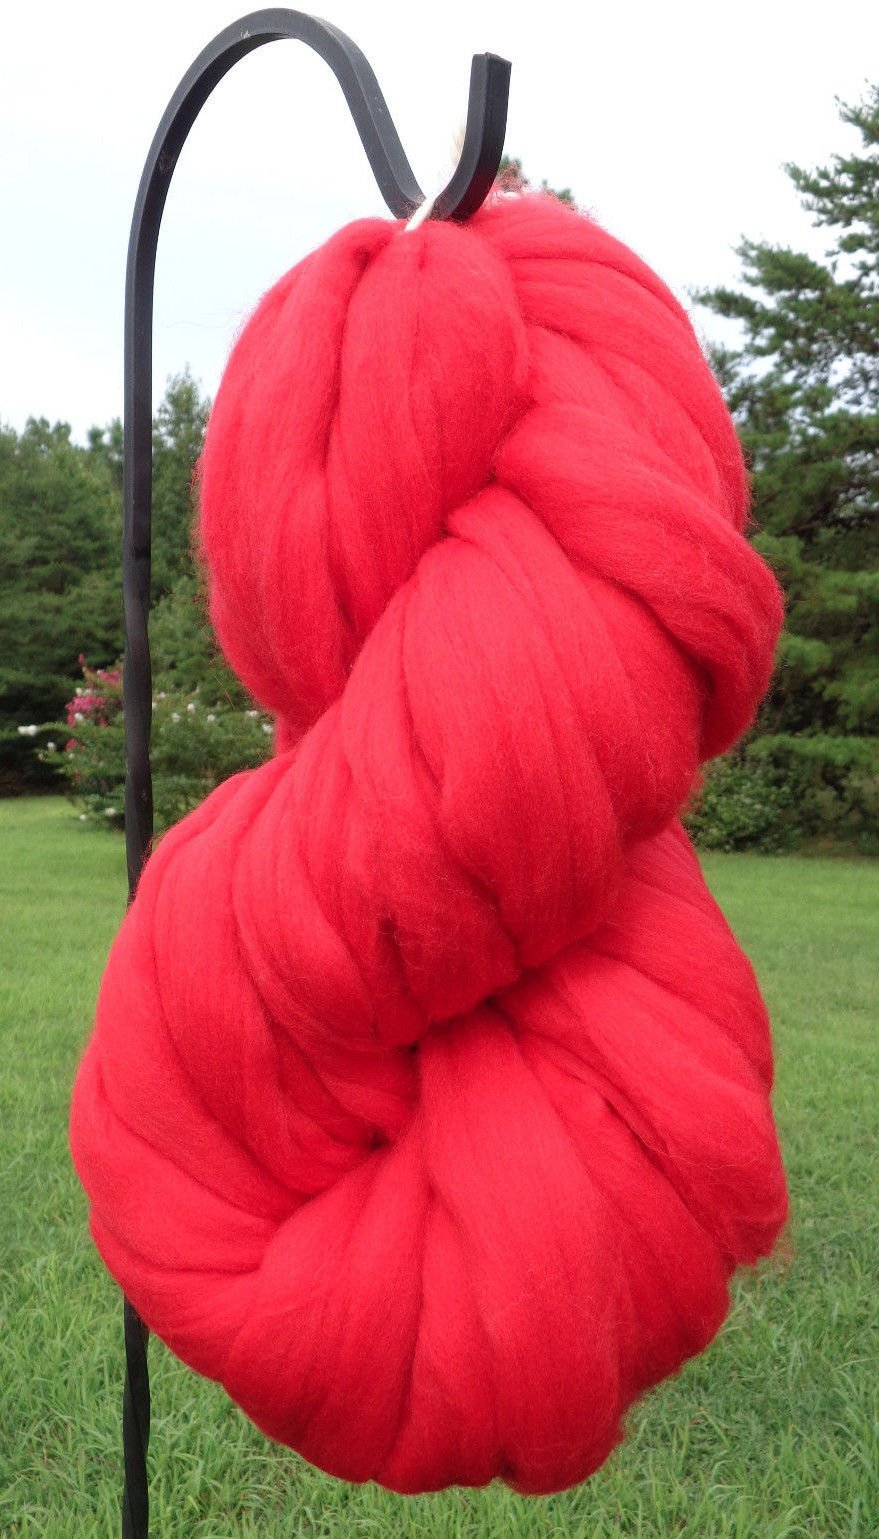 Valentine Red Wool Top Roving Fiber Spinning, Felting Crafts USA (8lb)